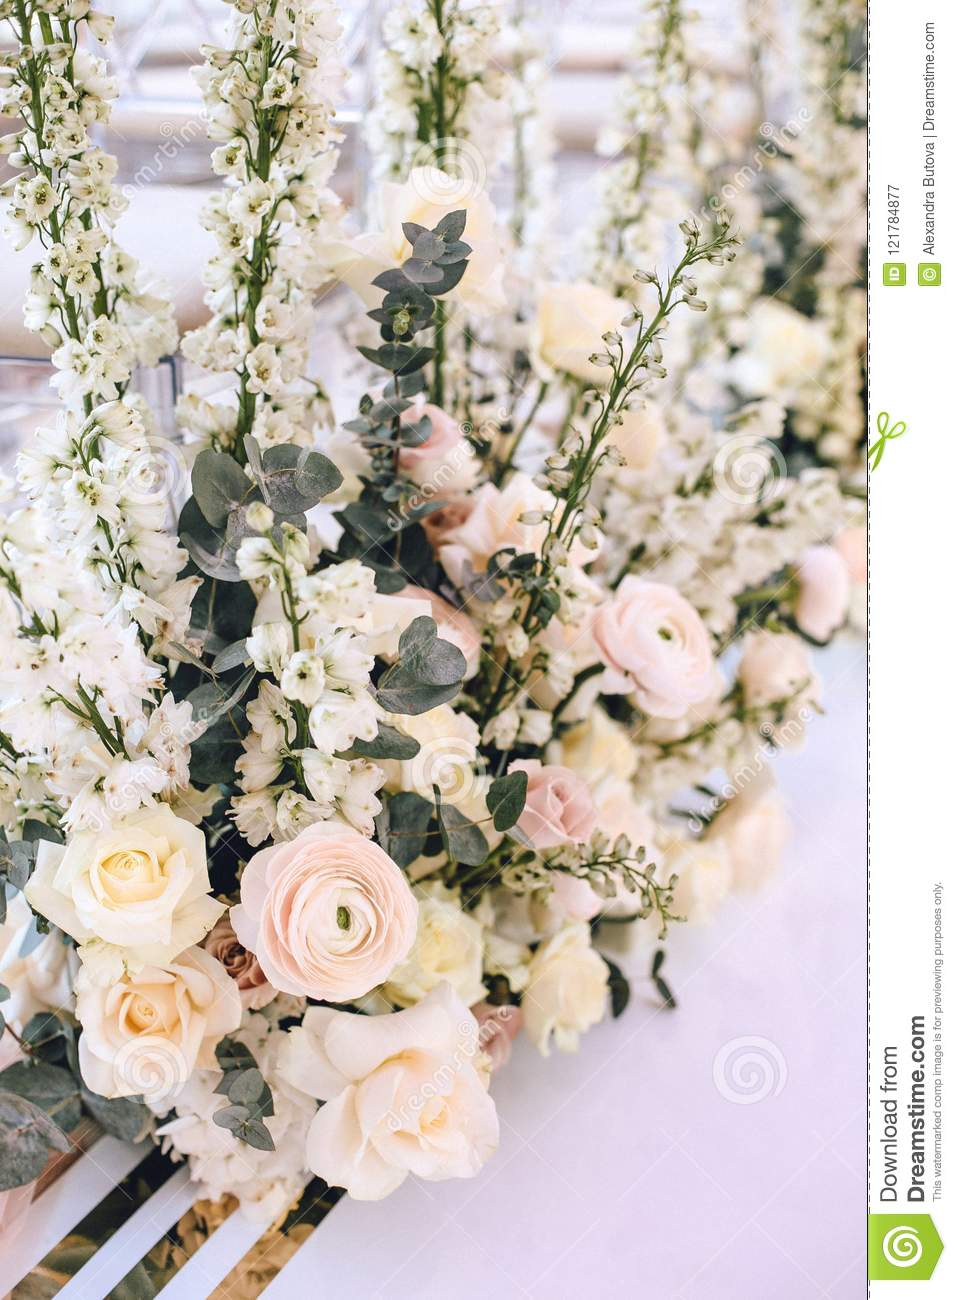 Flower Arrangement Bouquet Of Pink Roses Ranunculus And White Bells